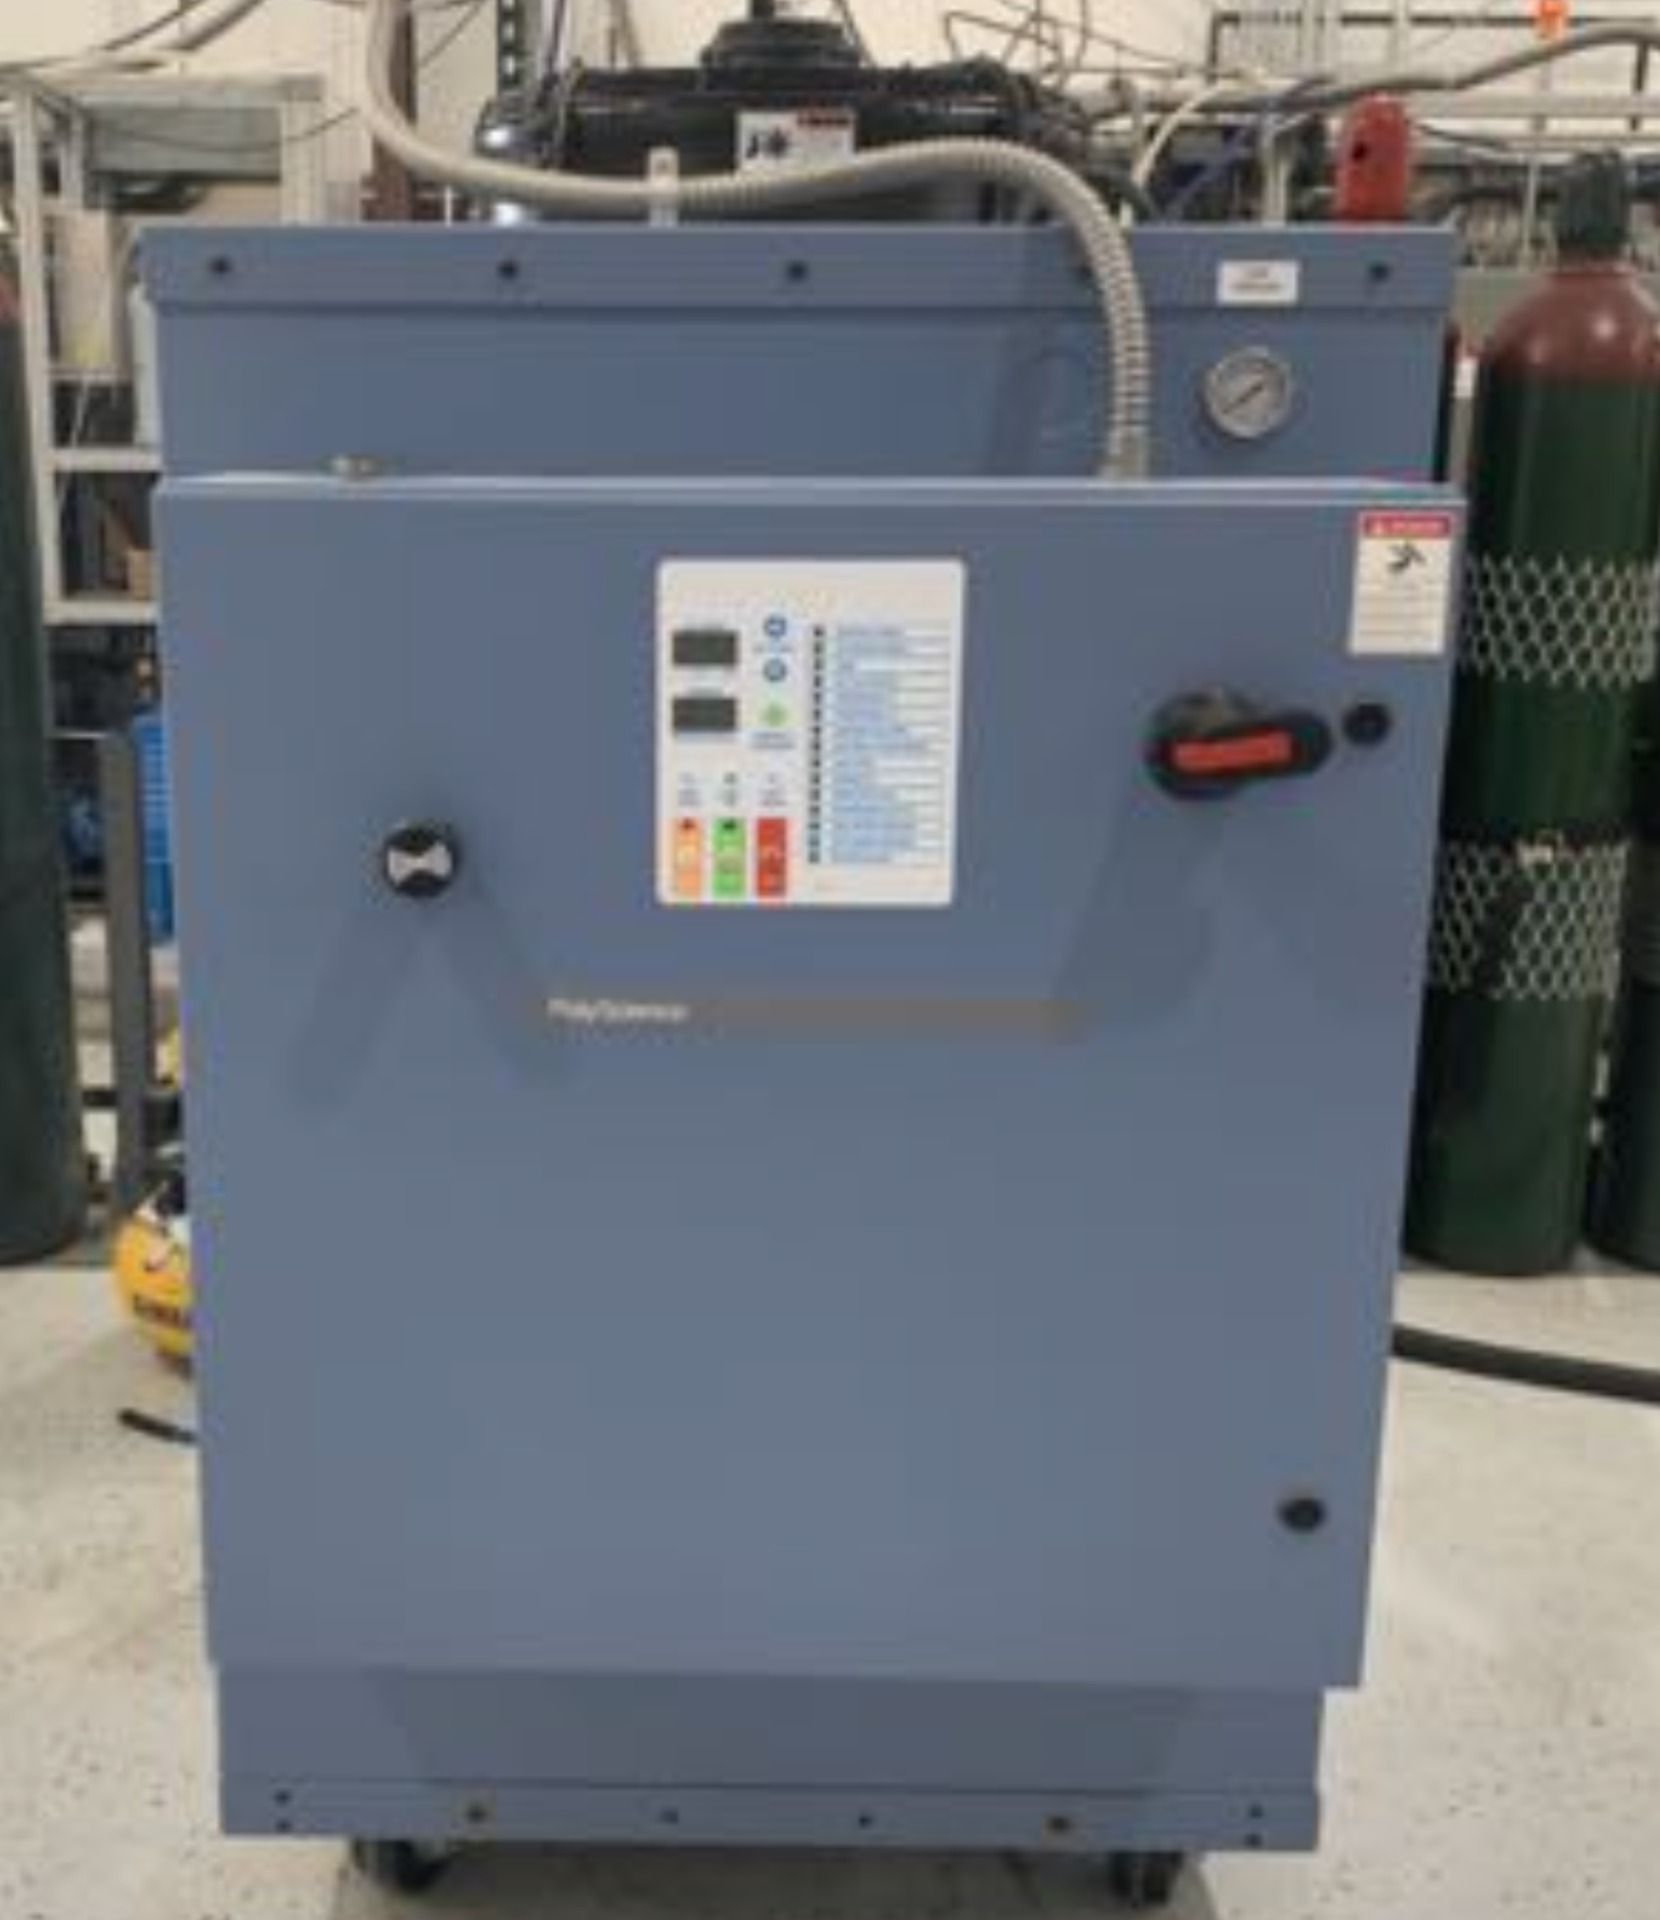 Used- ExtraktLAB Supercritical CO2 Extraction System with PolyScience Chiller Included. Model E-140 - Image 7 of 9